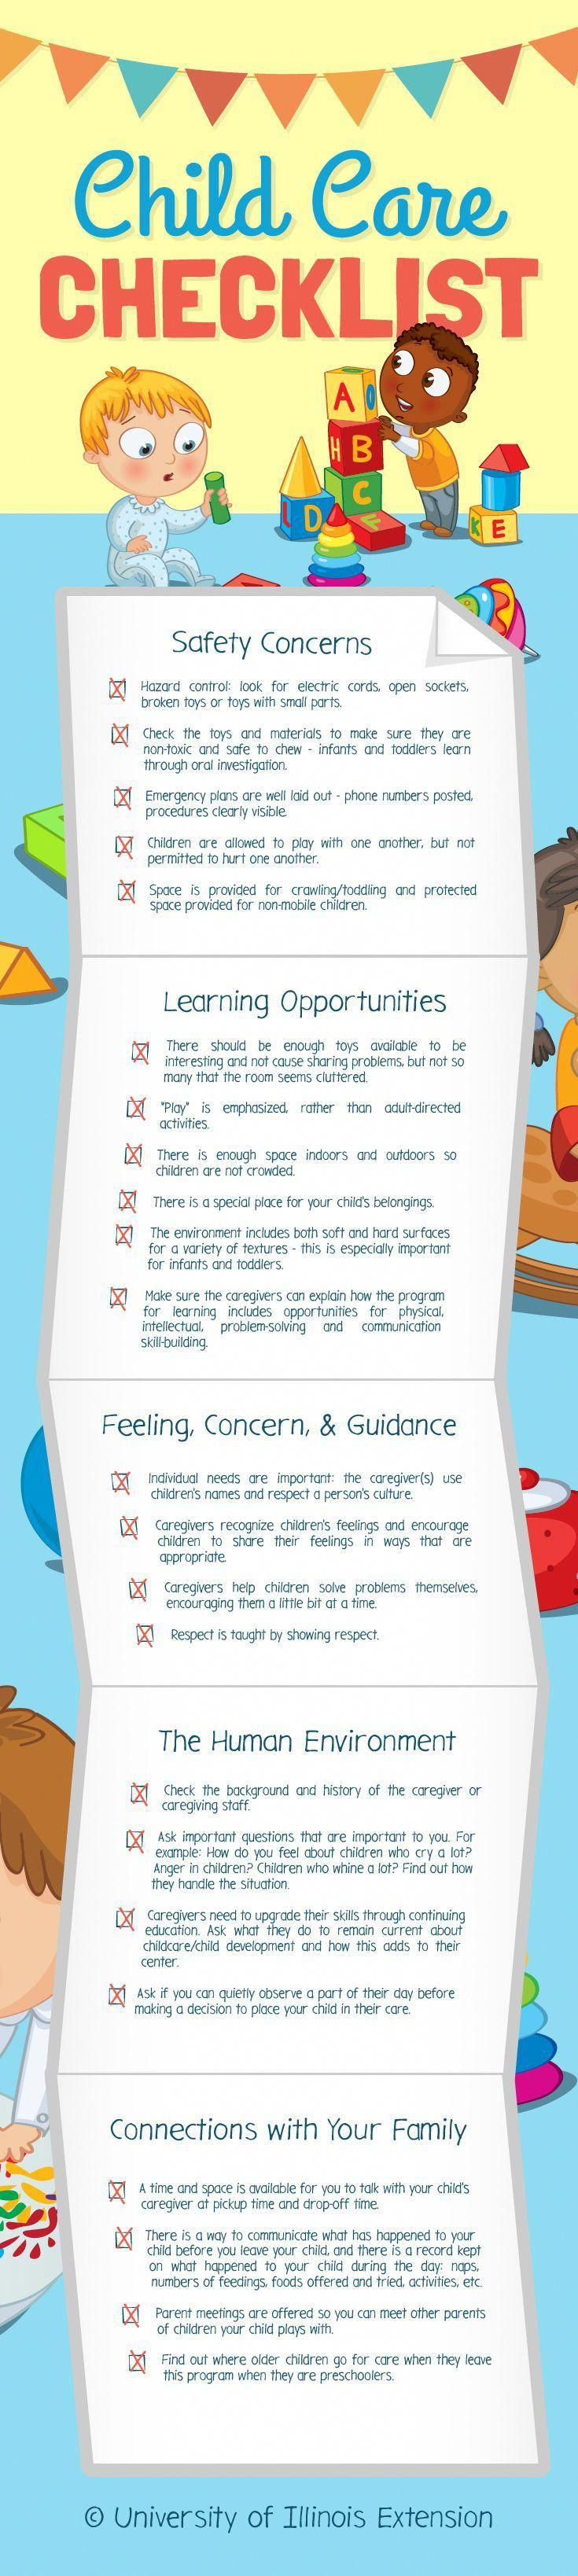 Child care checklist great resource for parents of